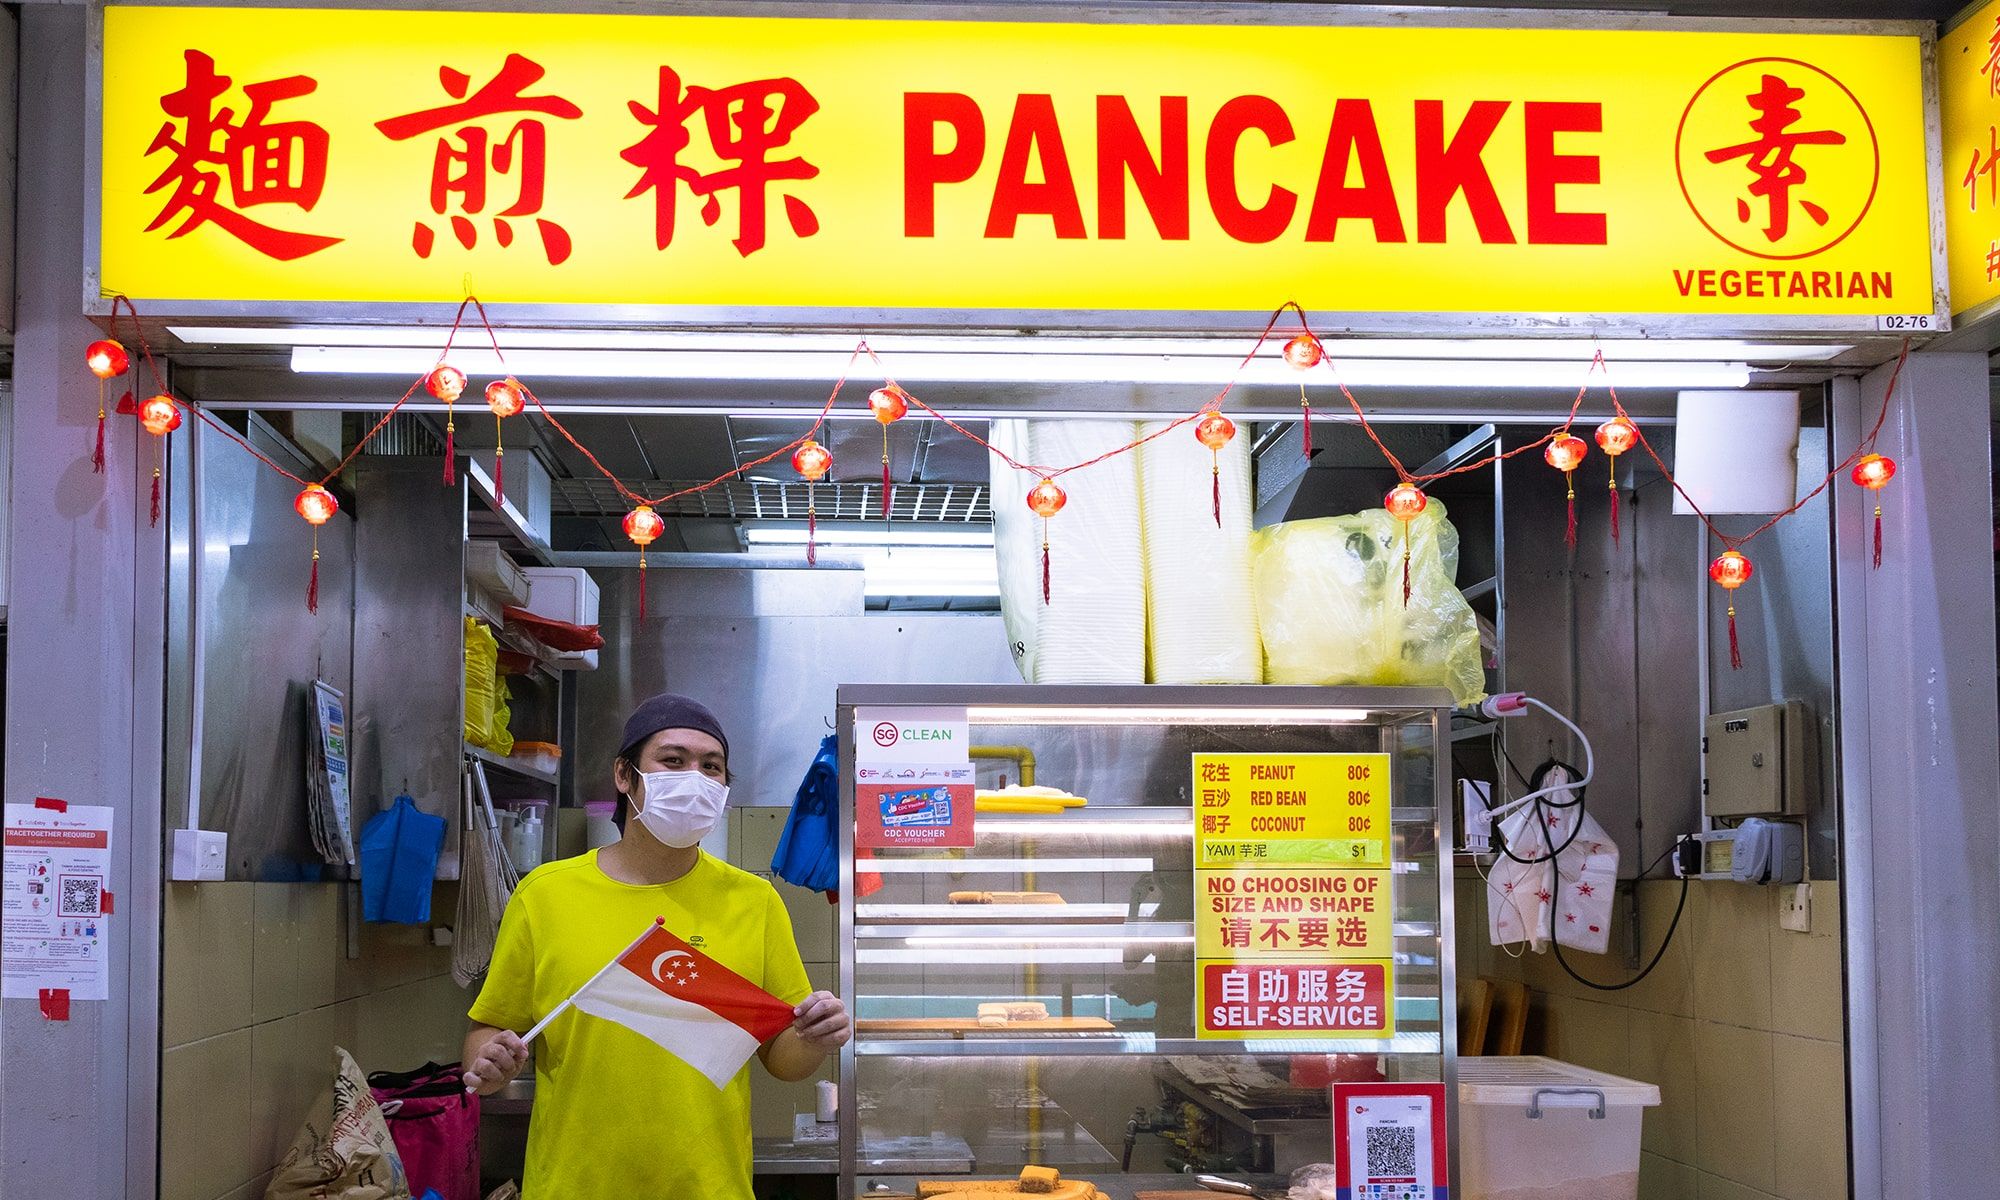 Owner of Pancake at Taman Jurong, available on WhyQ for delivery.